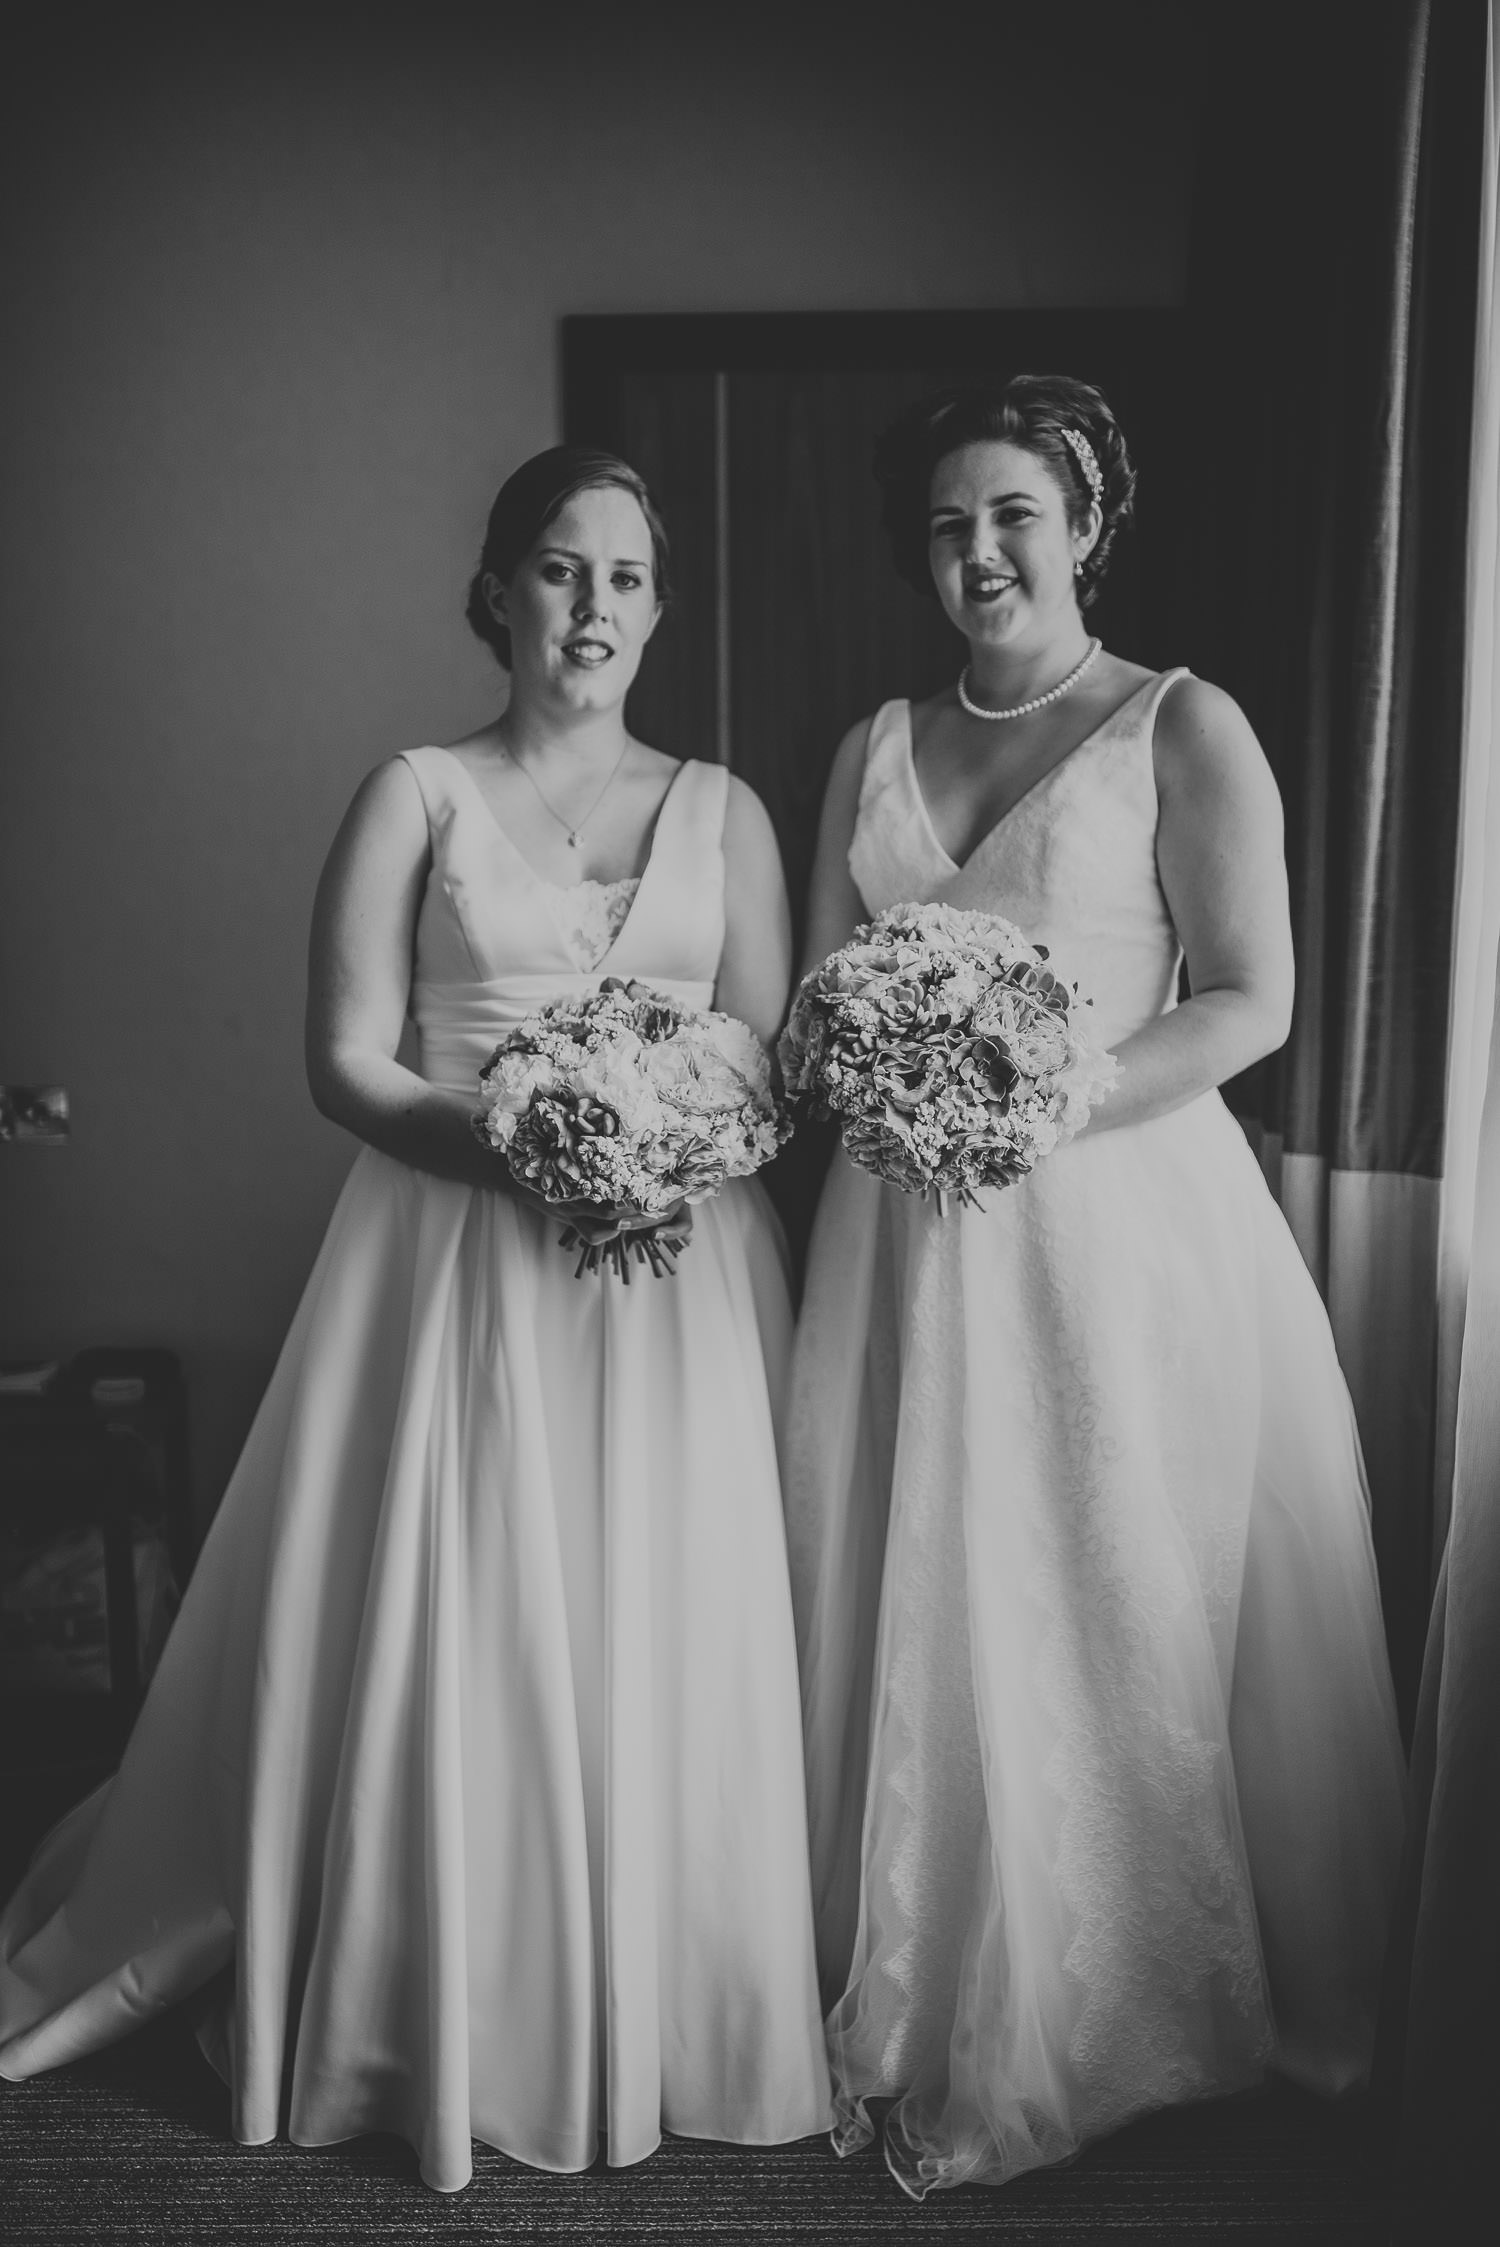 portrait with both brides